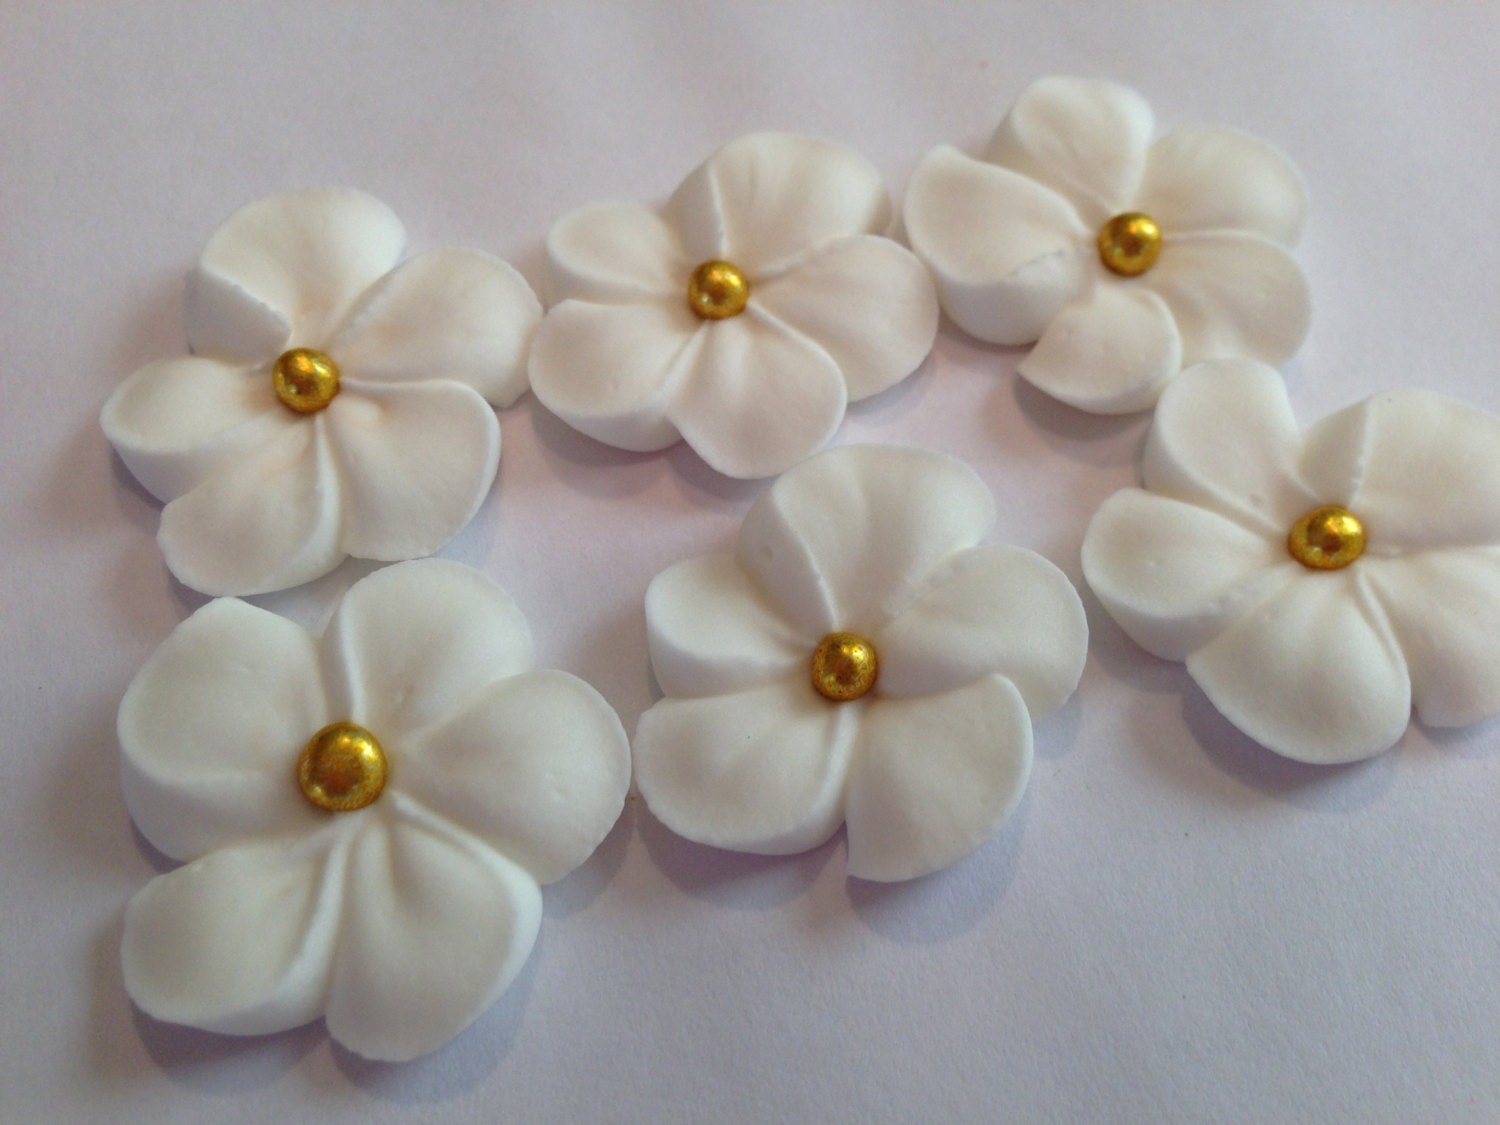 Lot Of 100 White Royal Icing Flowers W Gold Sugar Balls For Etsy